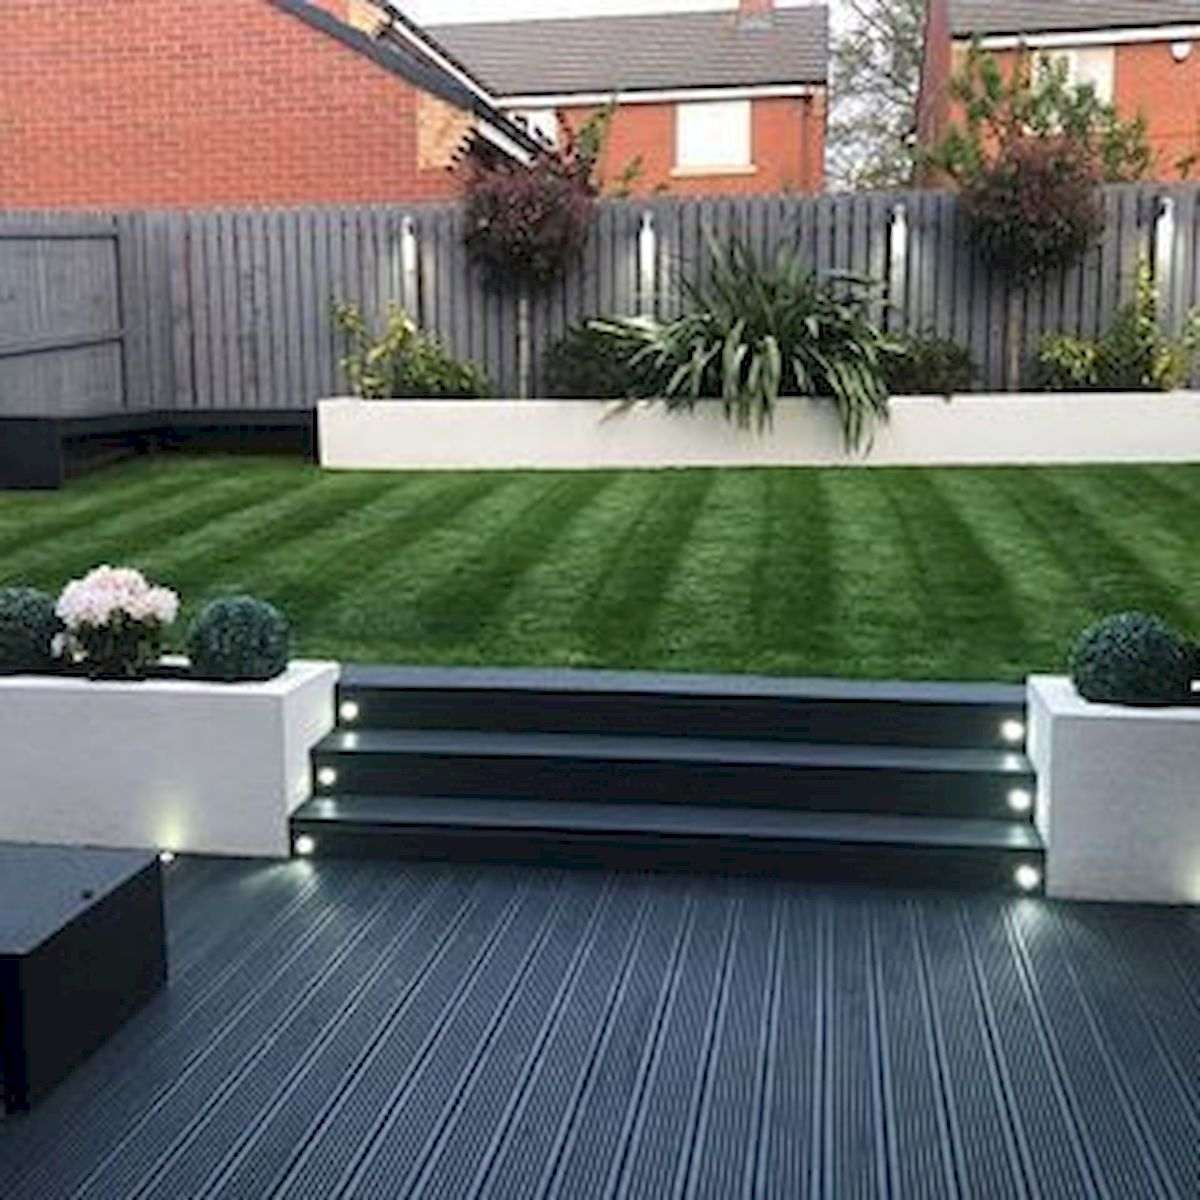 40 Fabulous Modern Garden Designs Ideas For Front Yard and ... on Patio And Grass Garden Ideas id=35684